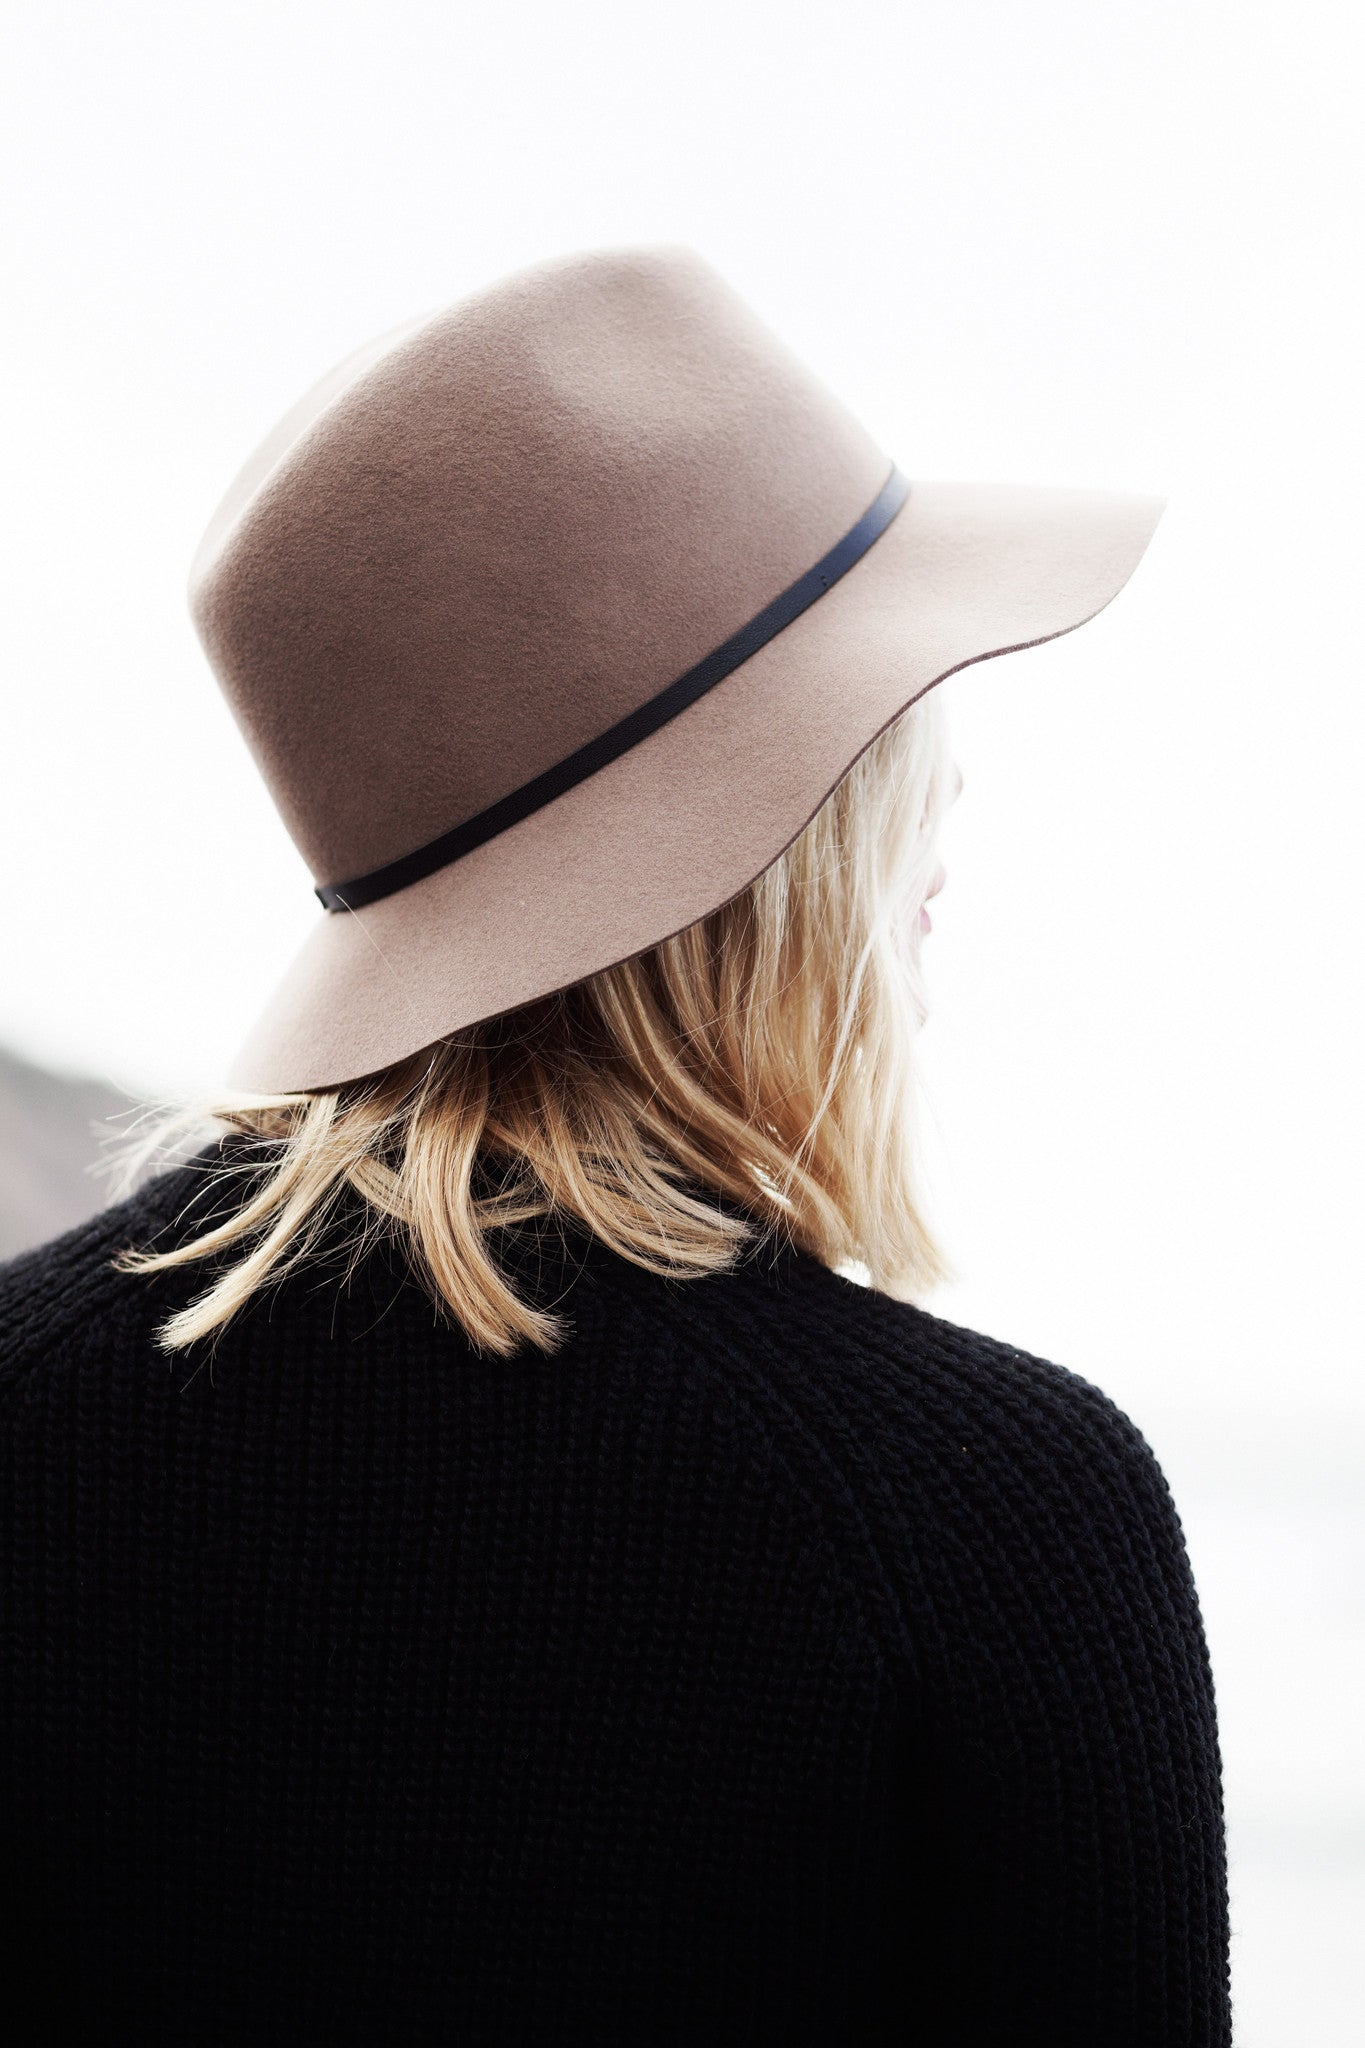 Wool Felt Fedora - Sand - Black Leather - Women's - JANESSA LEONE